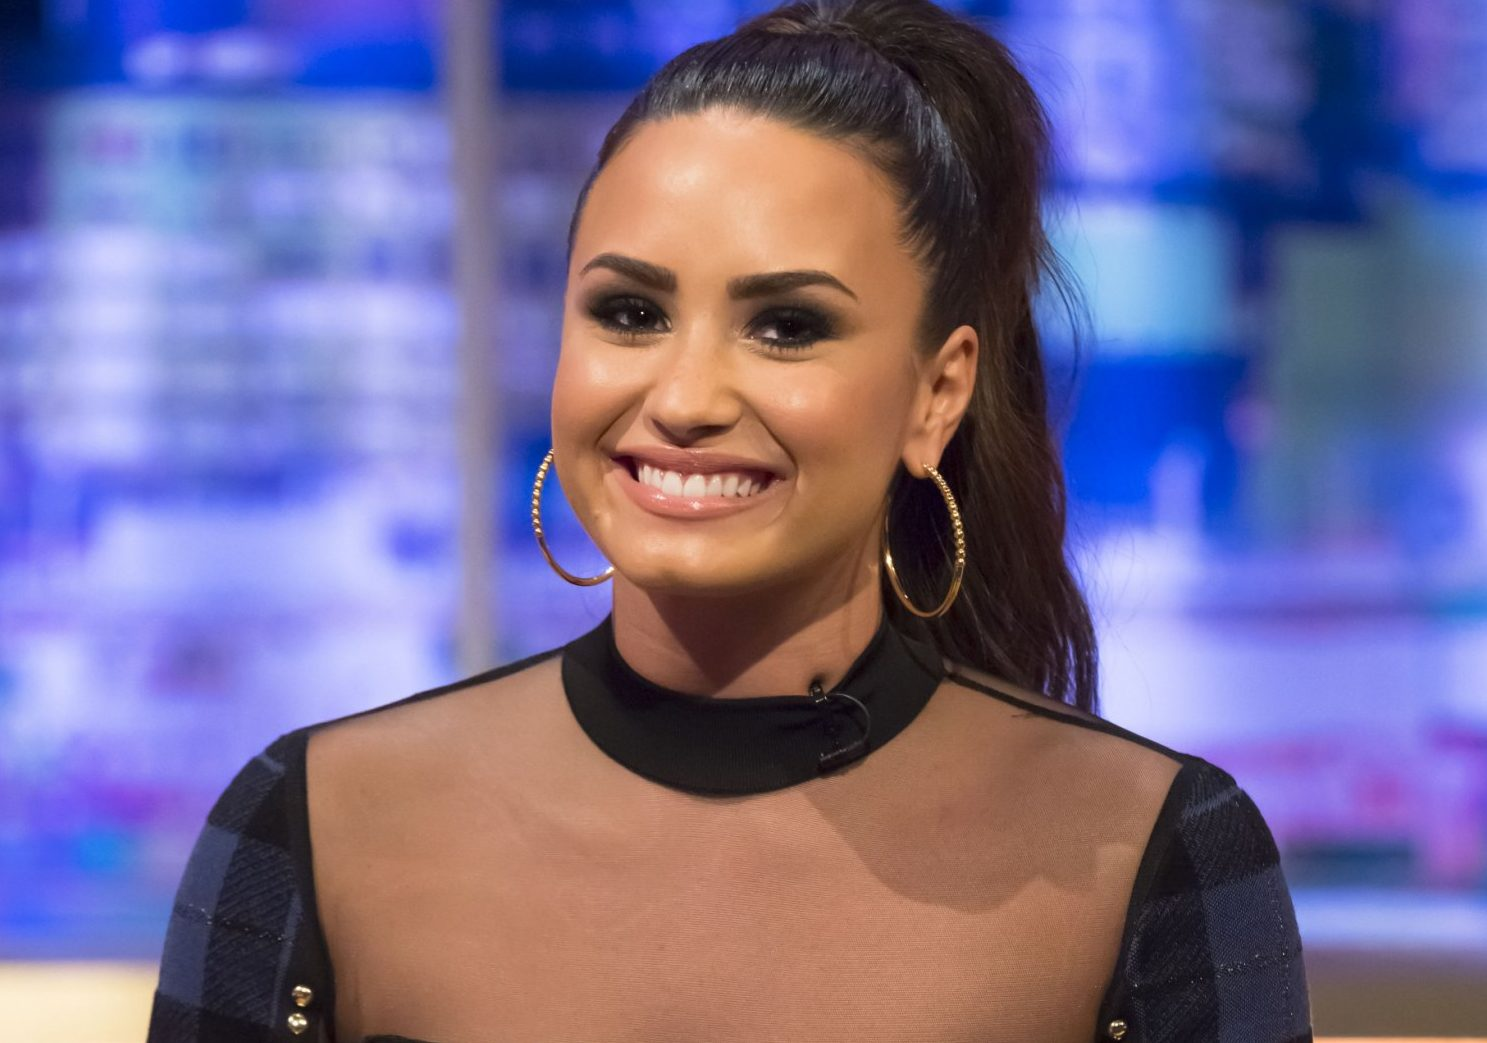 Demi Lovato's parents banned her from seeing her sister as she battled her addictions